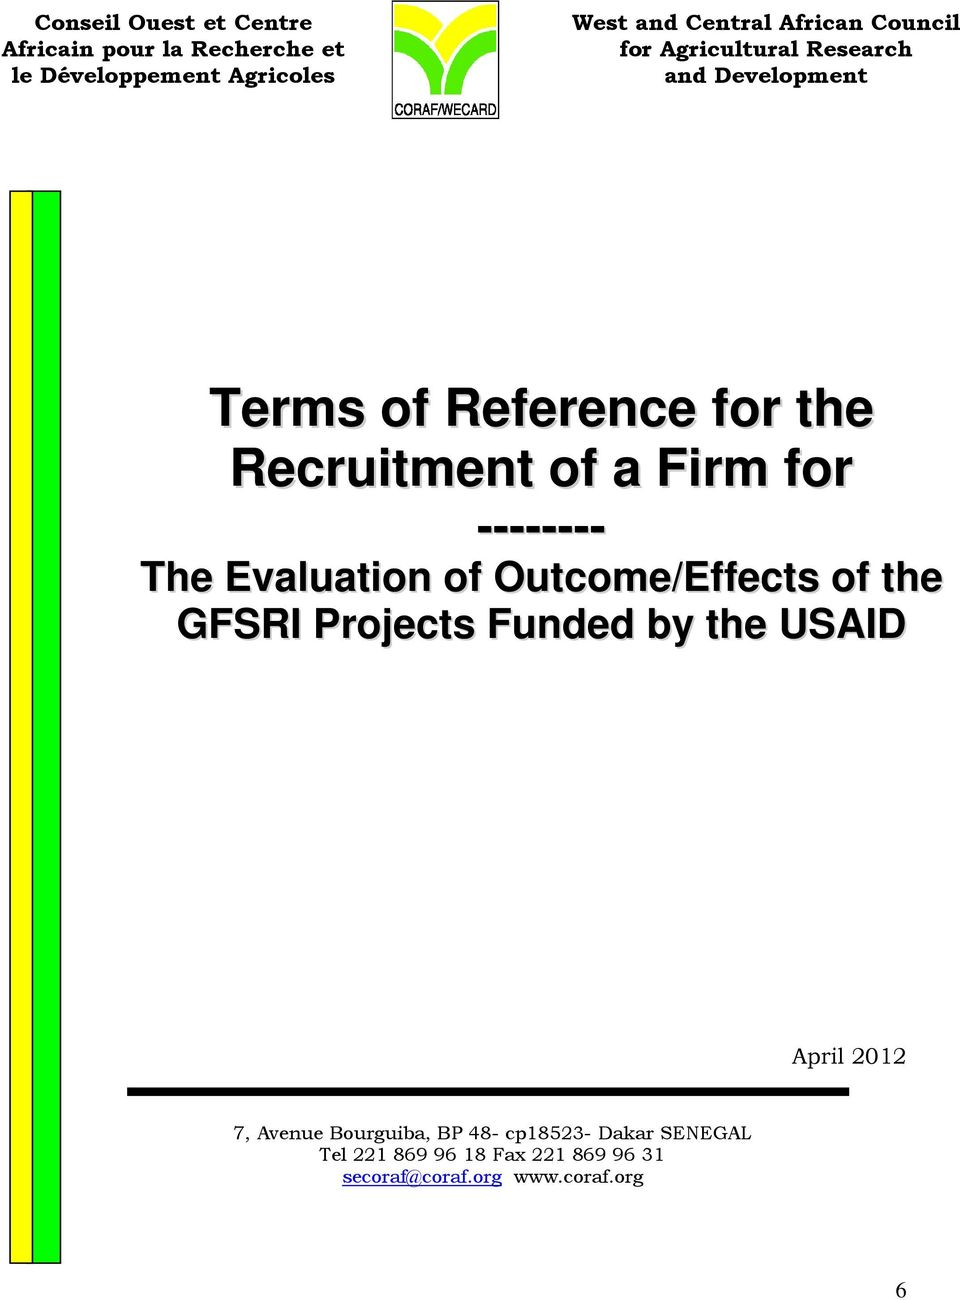 -------- The Evaluation of Outcome/Effects of the GFSRI Projects Funded by the USAID April 2012 7, Avenue